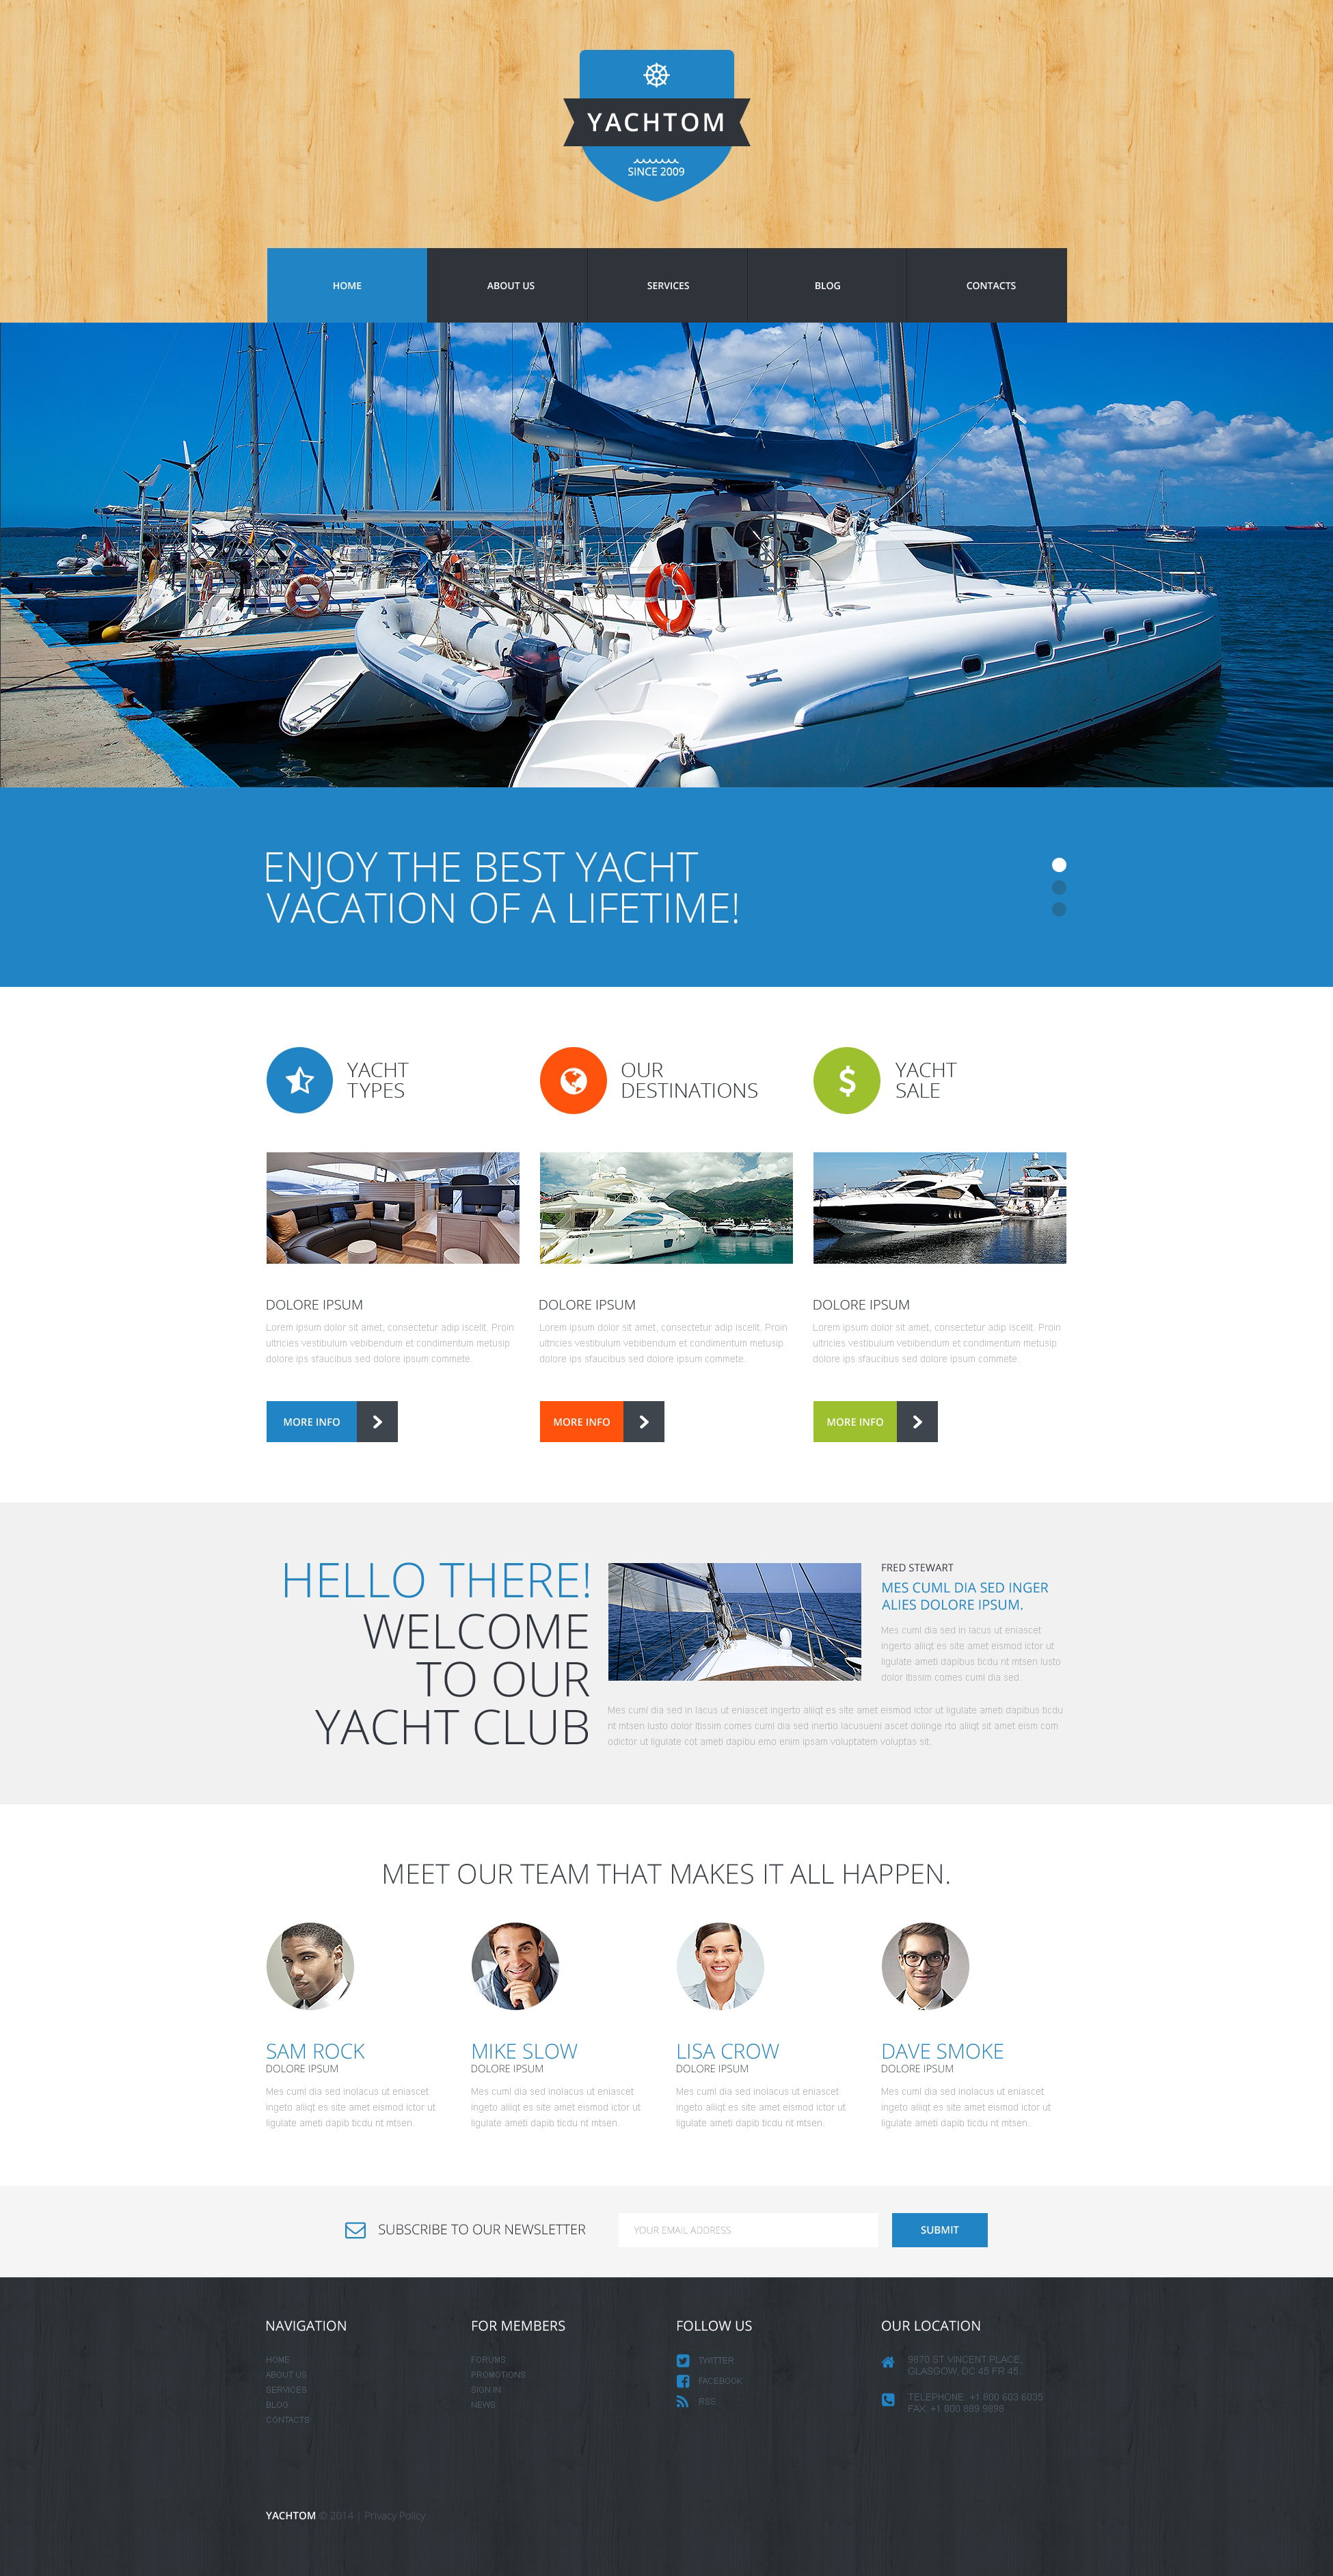 Pleasant Yachting Experience №50885 - скриншот